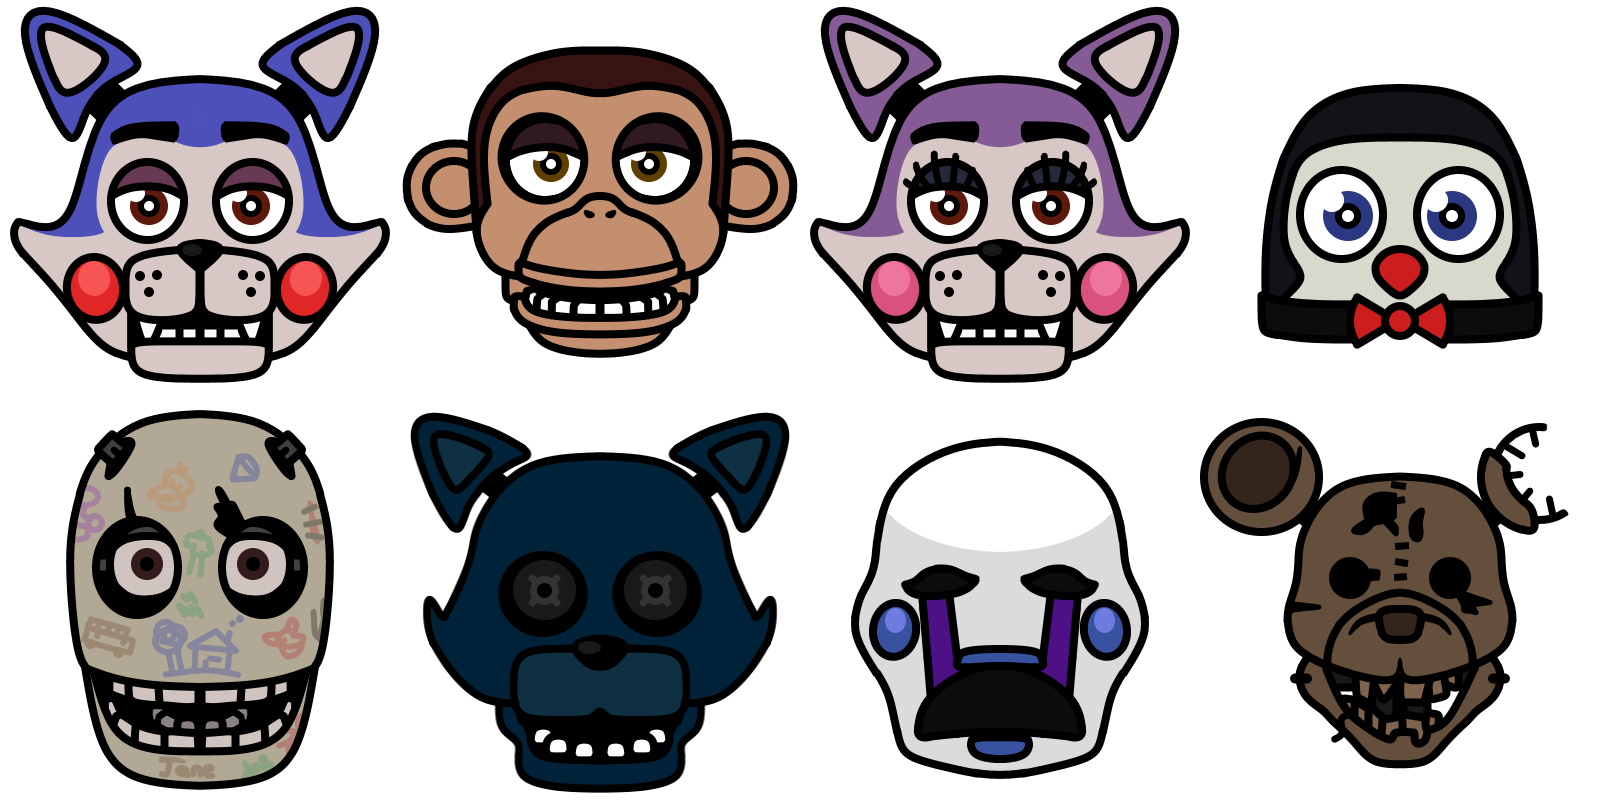 Five Nights at Candy's 2 - FNAF Ultimate Custom Night